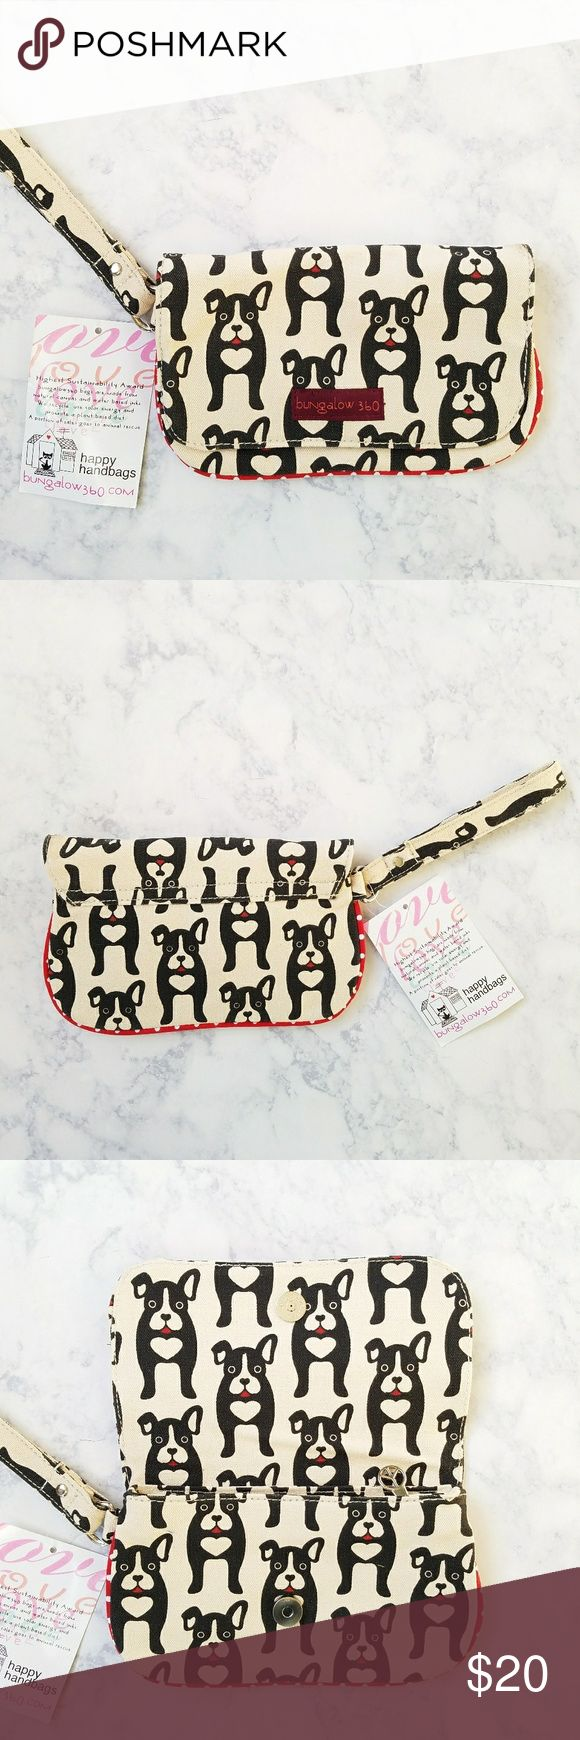 """Bungalow 360 Boston Terrier Dog Wristlet Bungalow 360. Wristlet wallet. Black dog (Boston Terrier) pattern. Vegan Cotton Canvas. Flap top with magnetic closure Zip top compartment. Interior zipper pocket. Red white polka dot lining. 9"""" x 5""""  6"""" wristlet strap. Brand new with tags! Bungalow 360 Bags Clutches & Wristlets"""